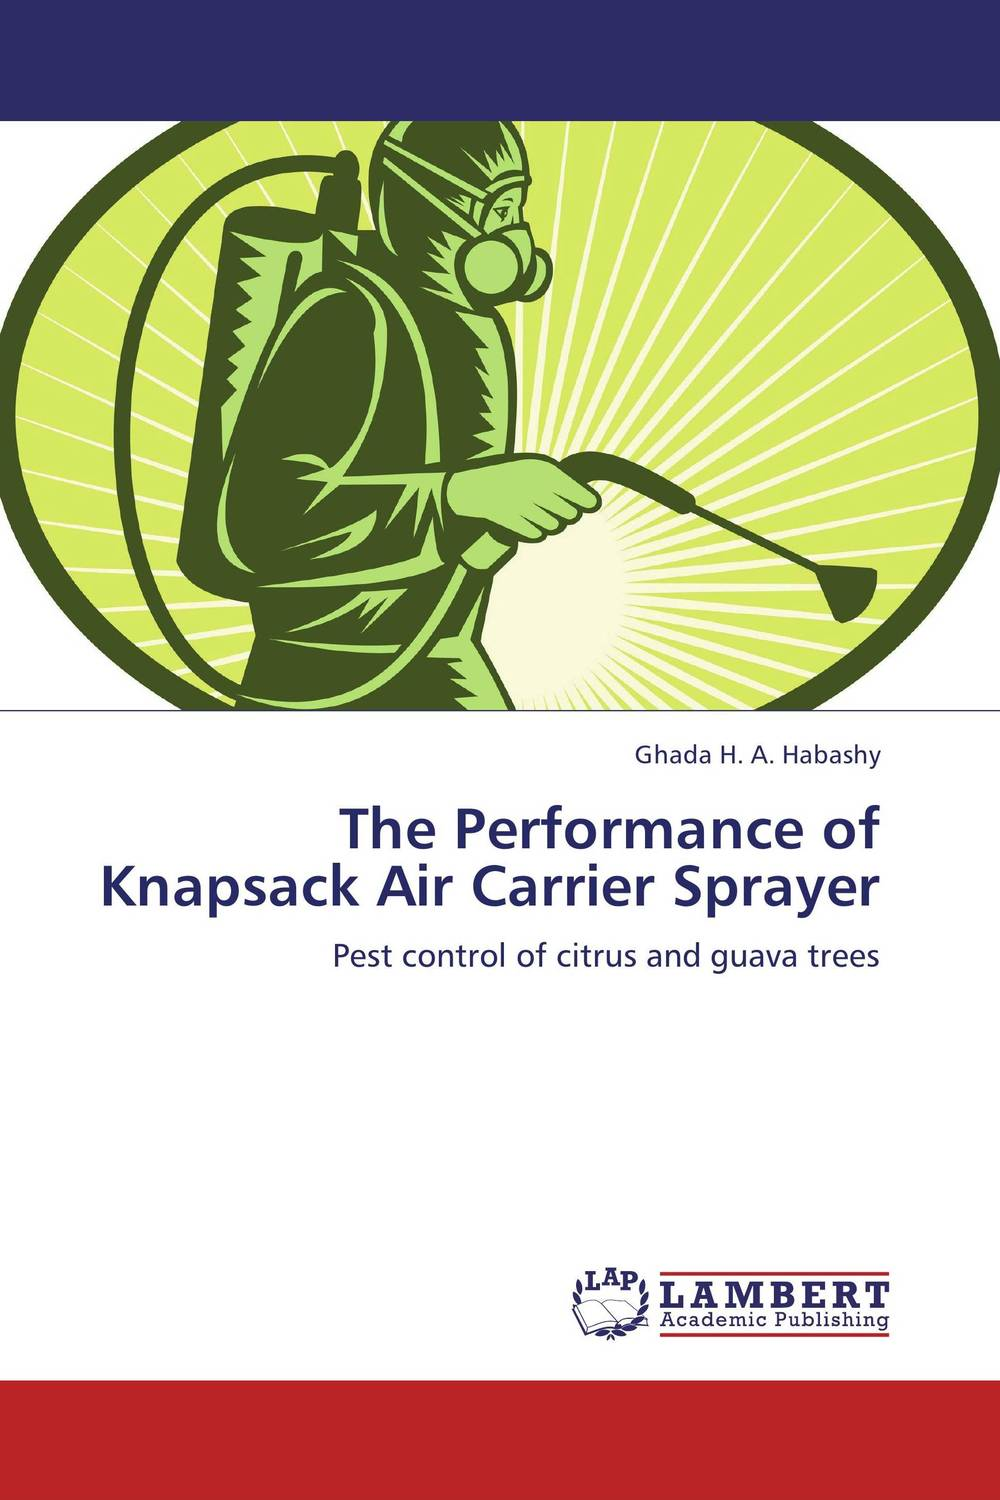 The Performance of Knapsack Air Carrier Sprayer